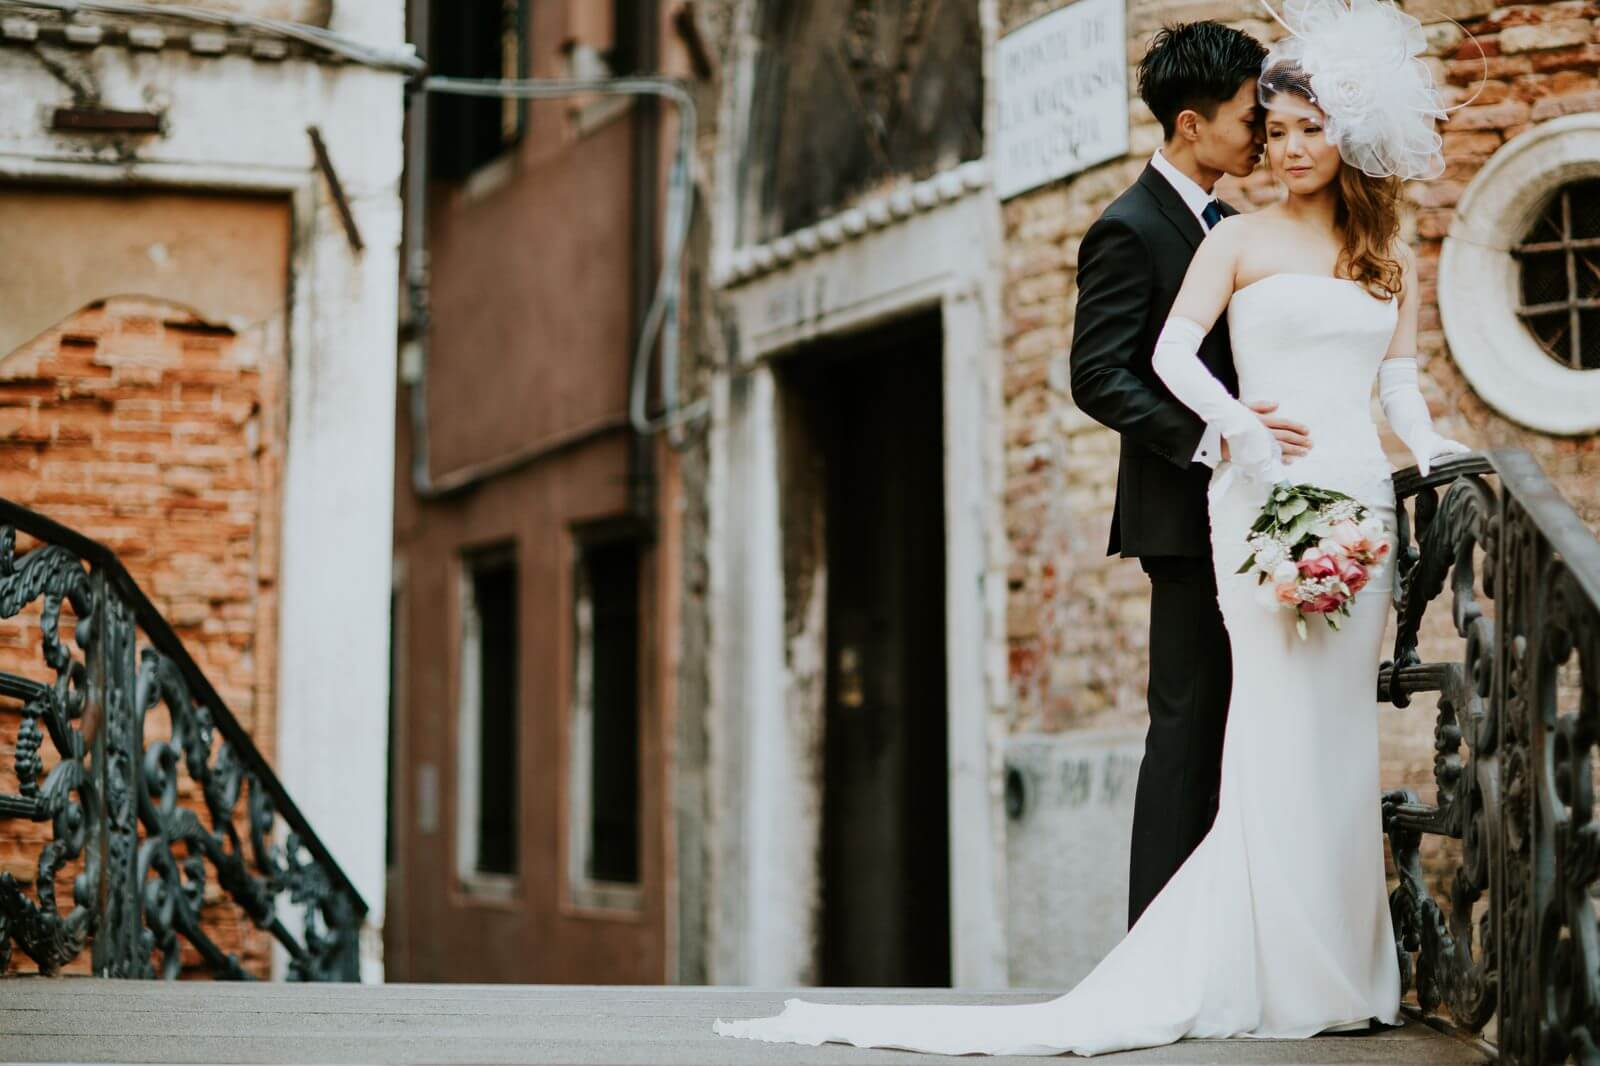 Wedding Photography Styles   Finding Your Style